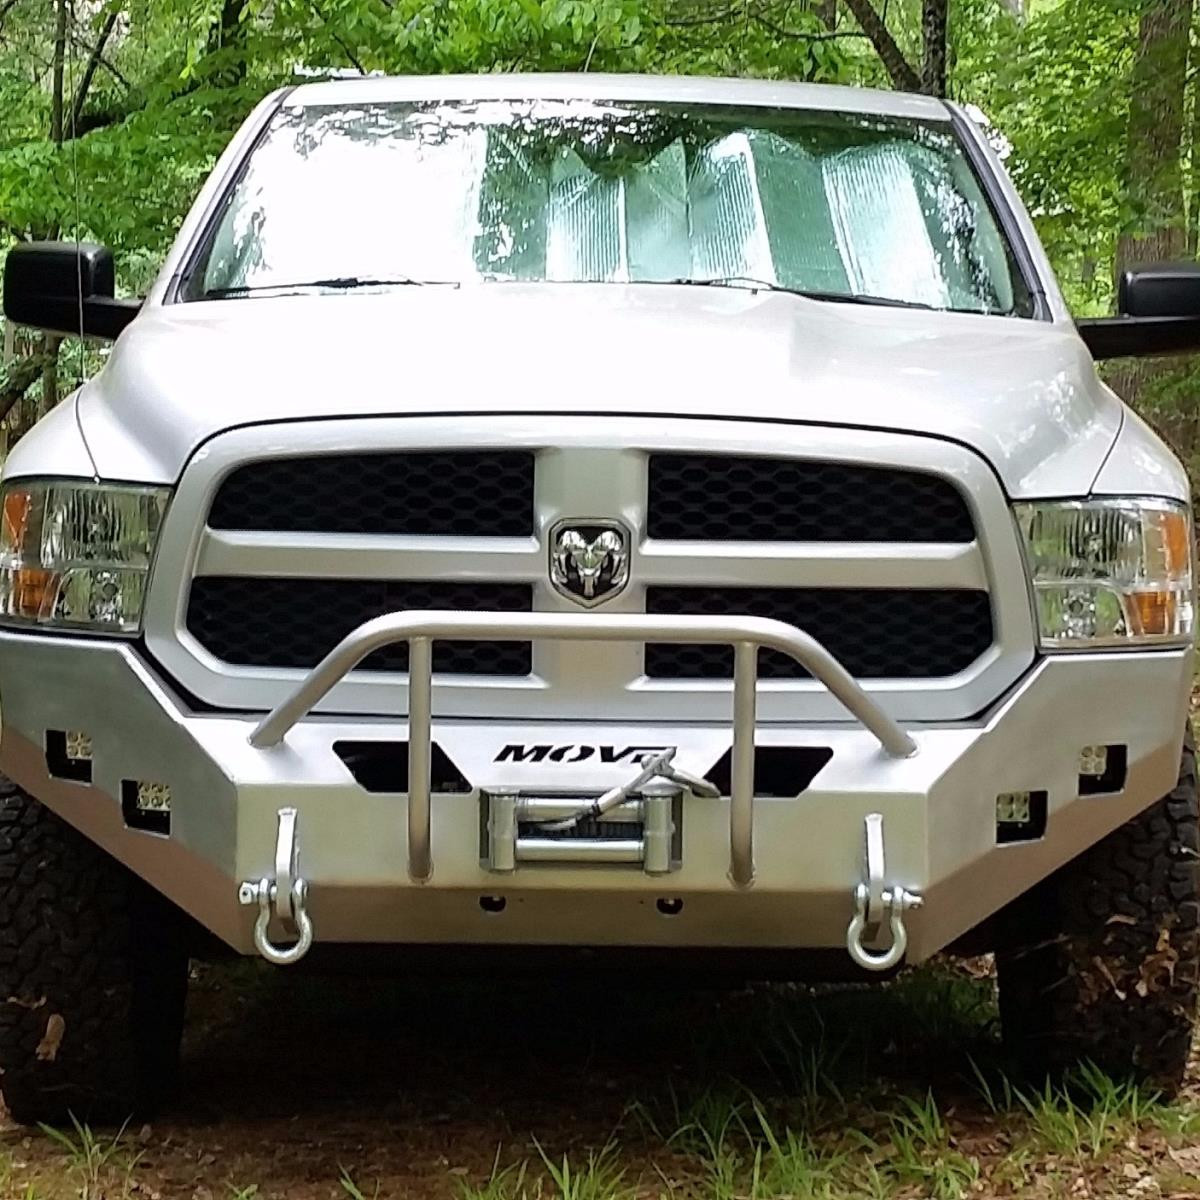 Best ideas about DIY Bumper Kit . Save or Pin DIY Dodge 1500 Bumper 2379 MOVE Now.